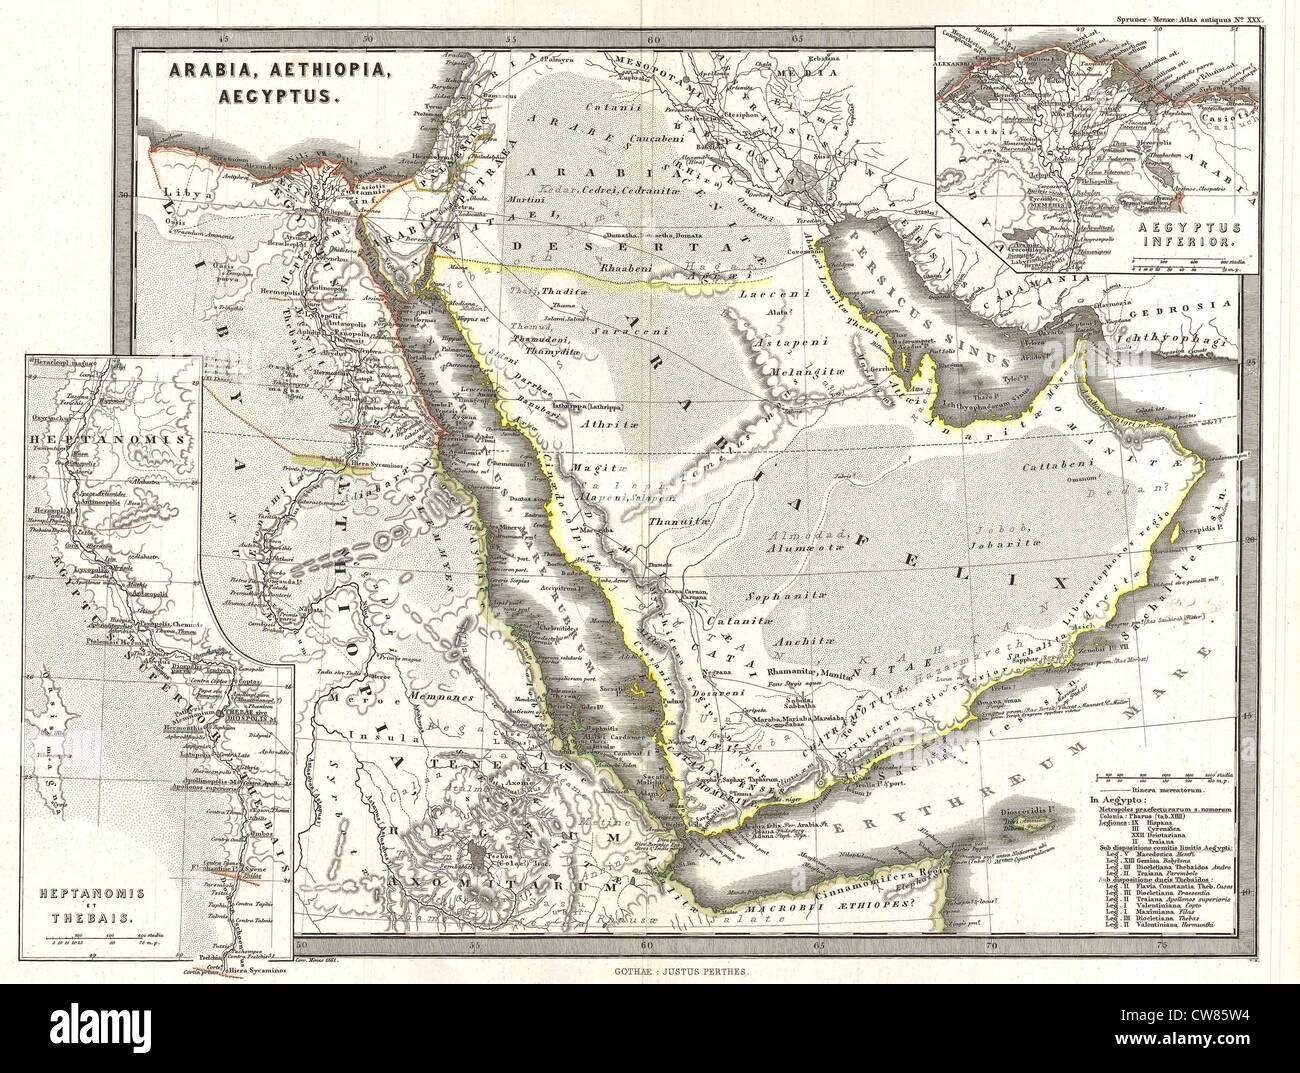 1865 Spruner Map of Arabia and Egypt in Antiquity - Stock Image